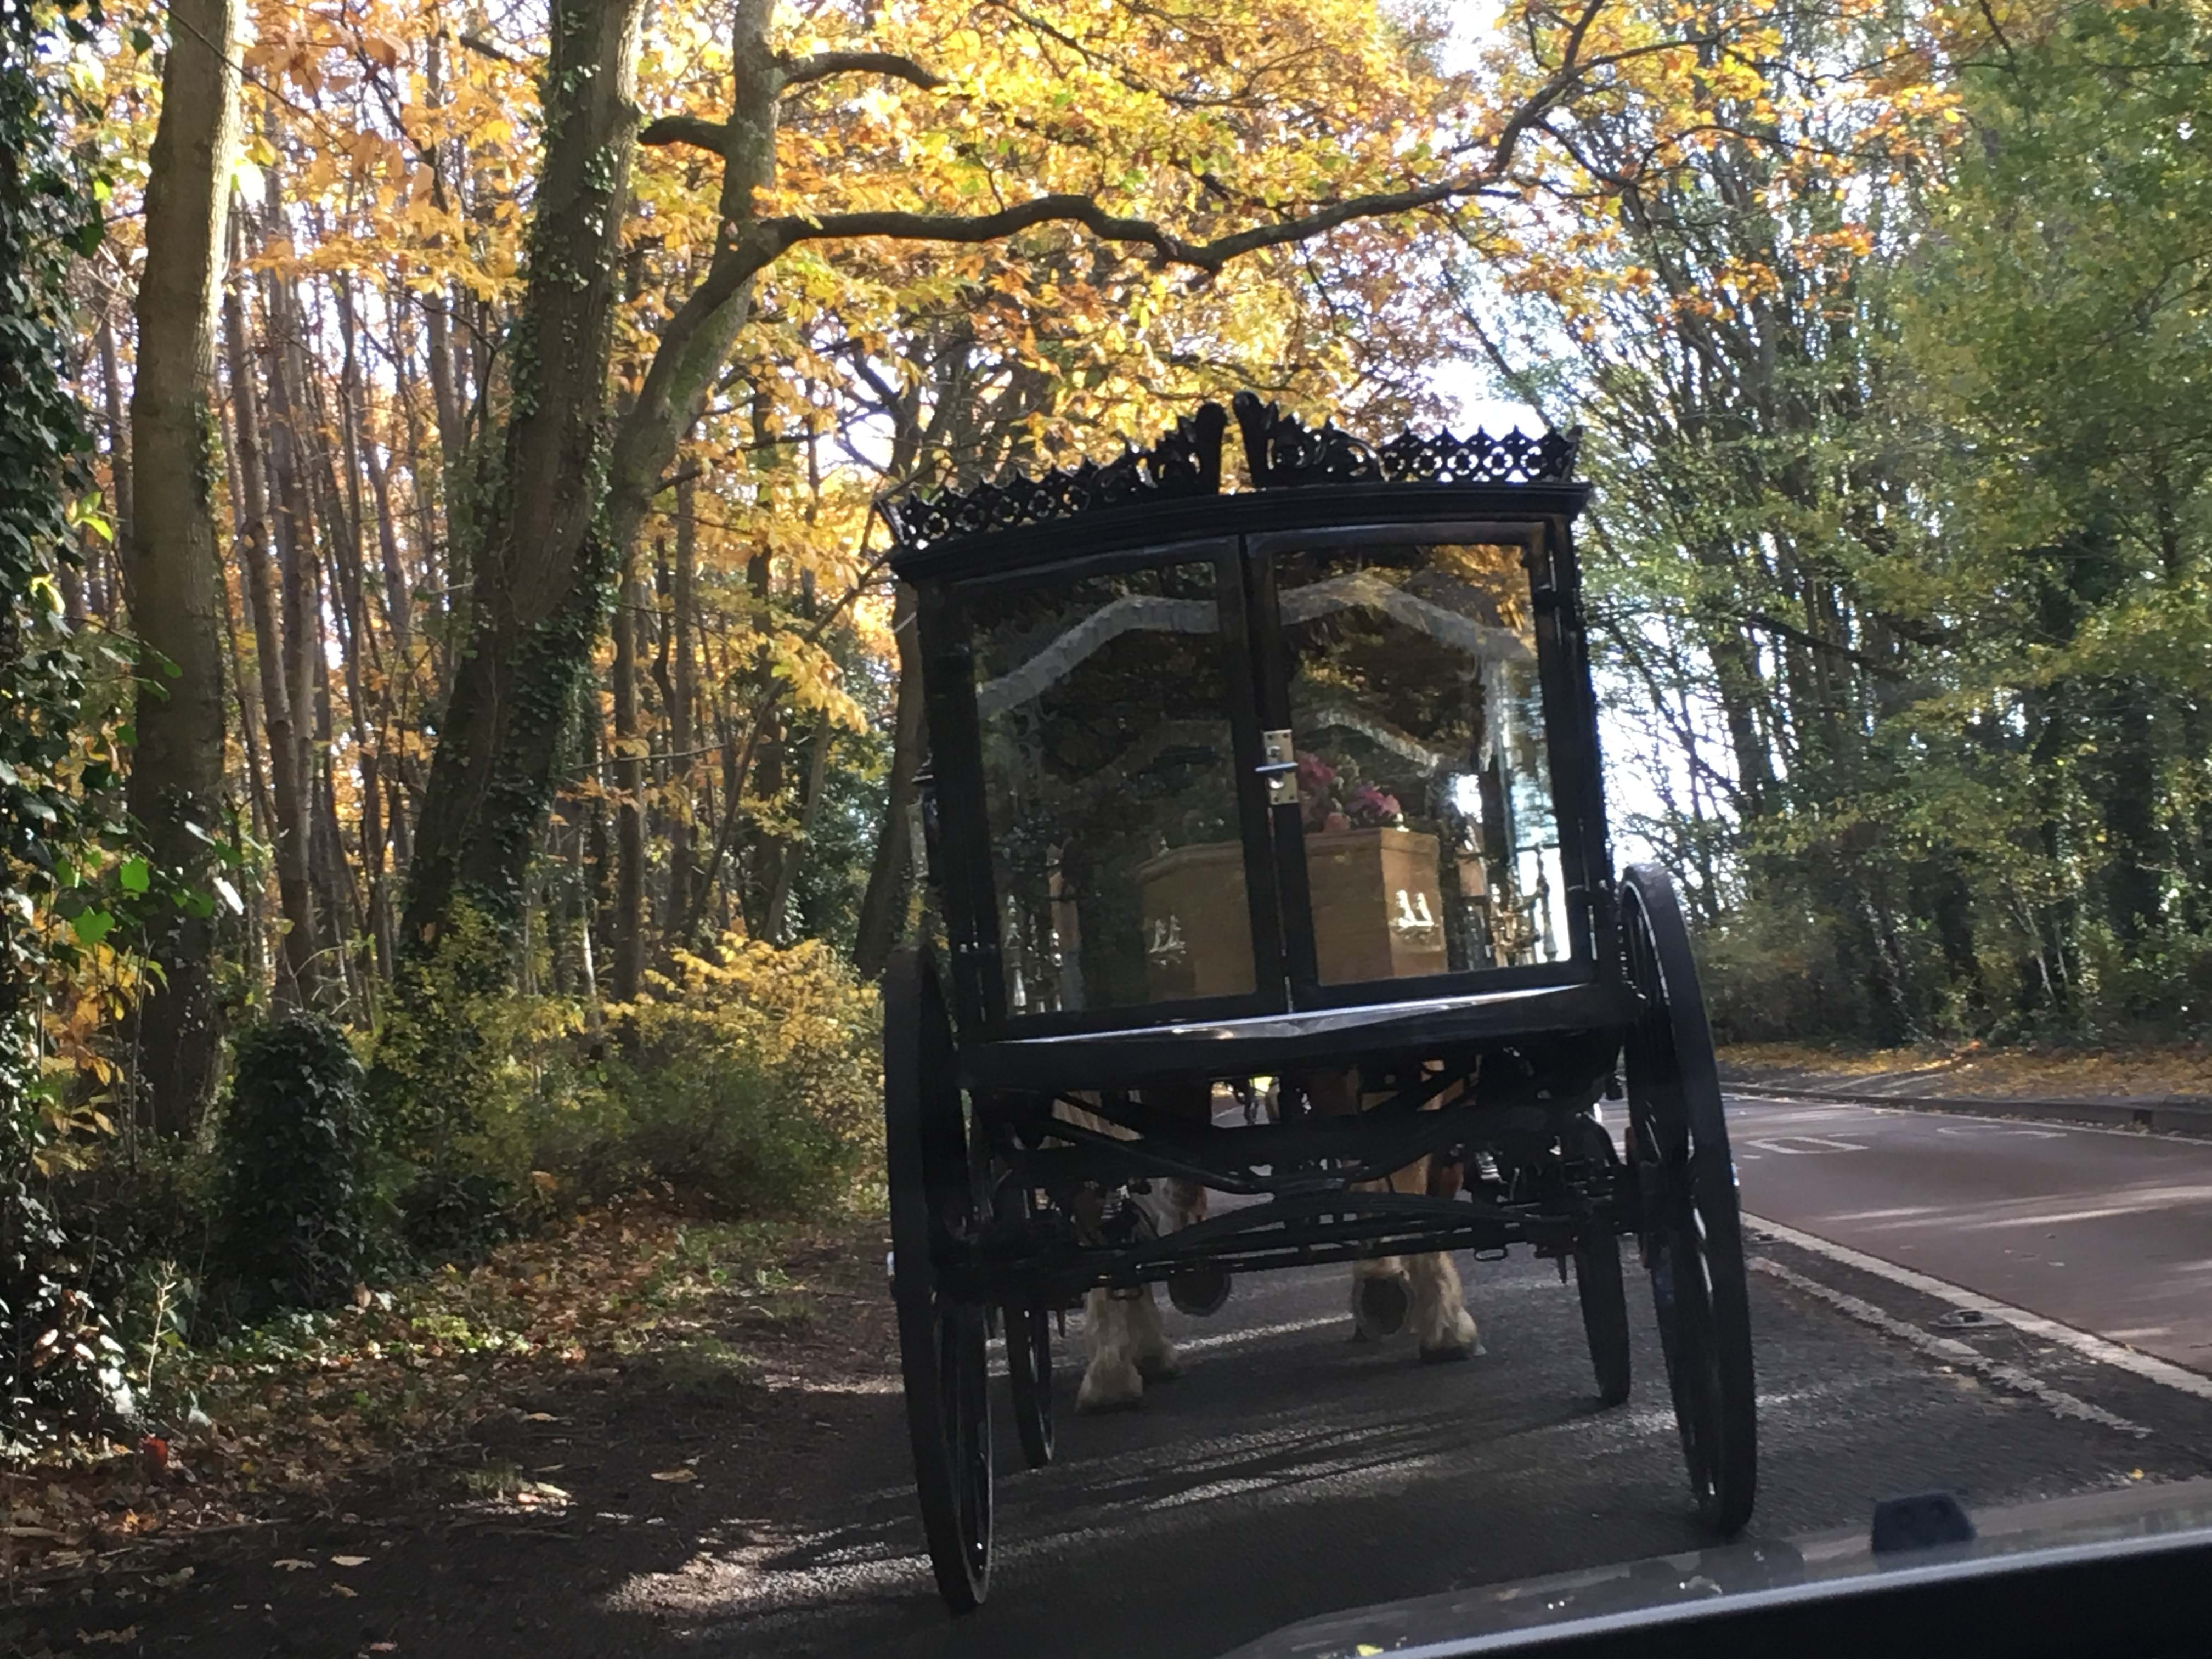 Horse drawn hearse going down a country lane